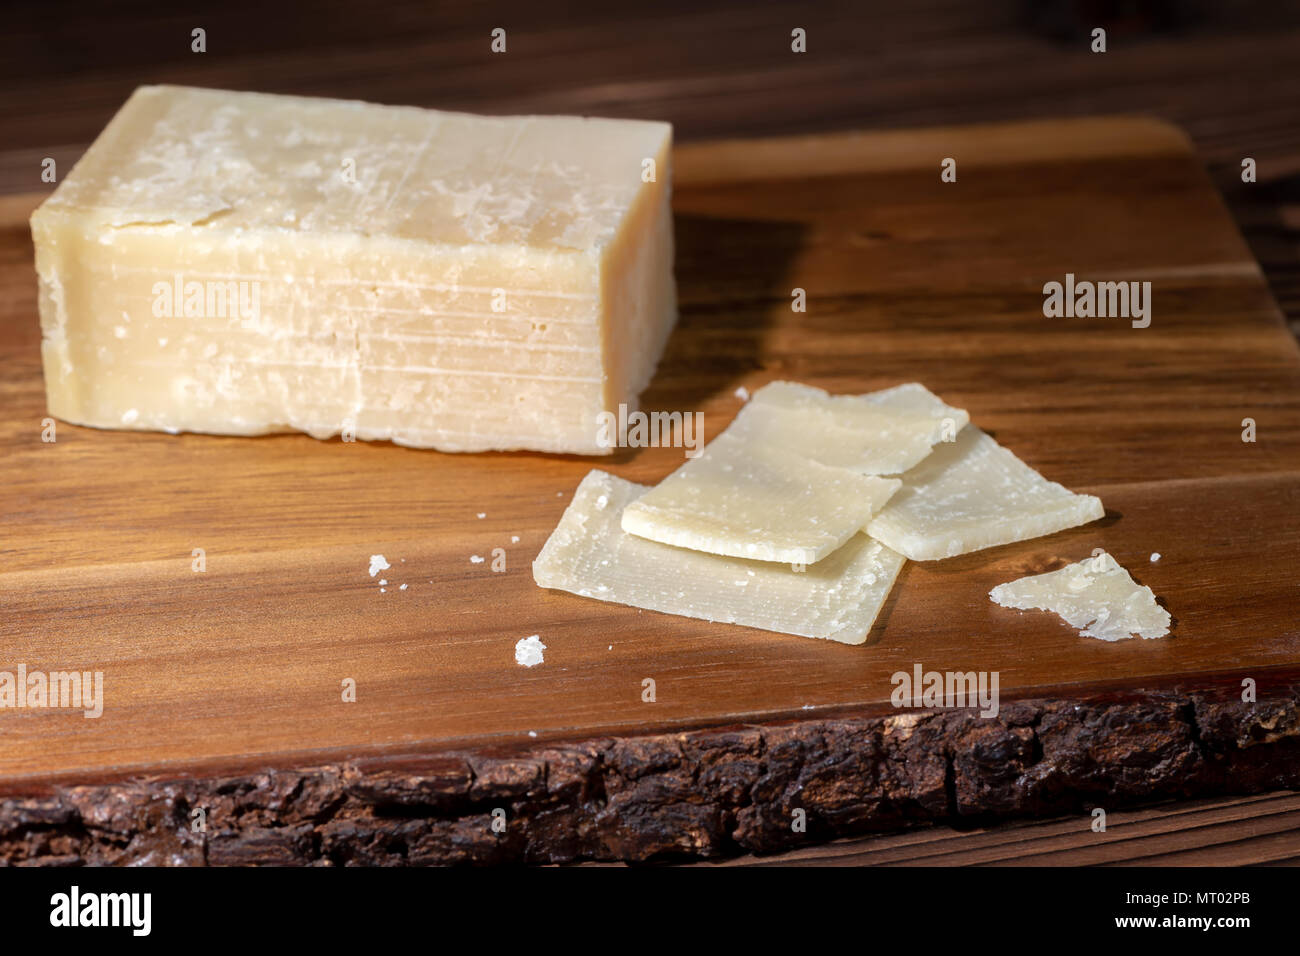 portion and slaced of fresh parmesan cheese on wooden table - Stock Image